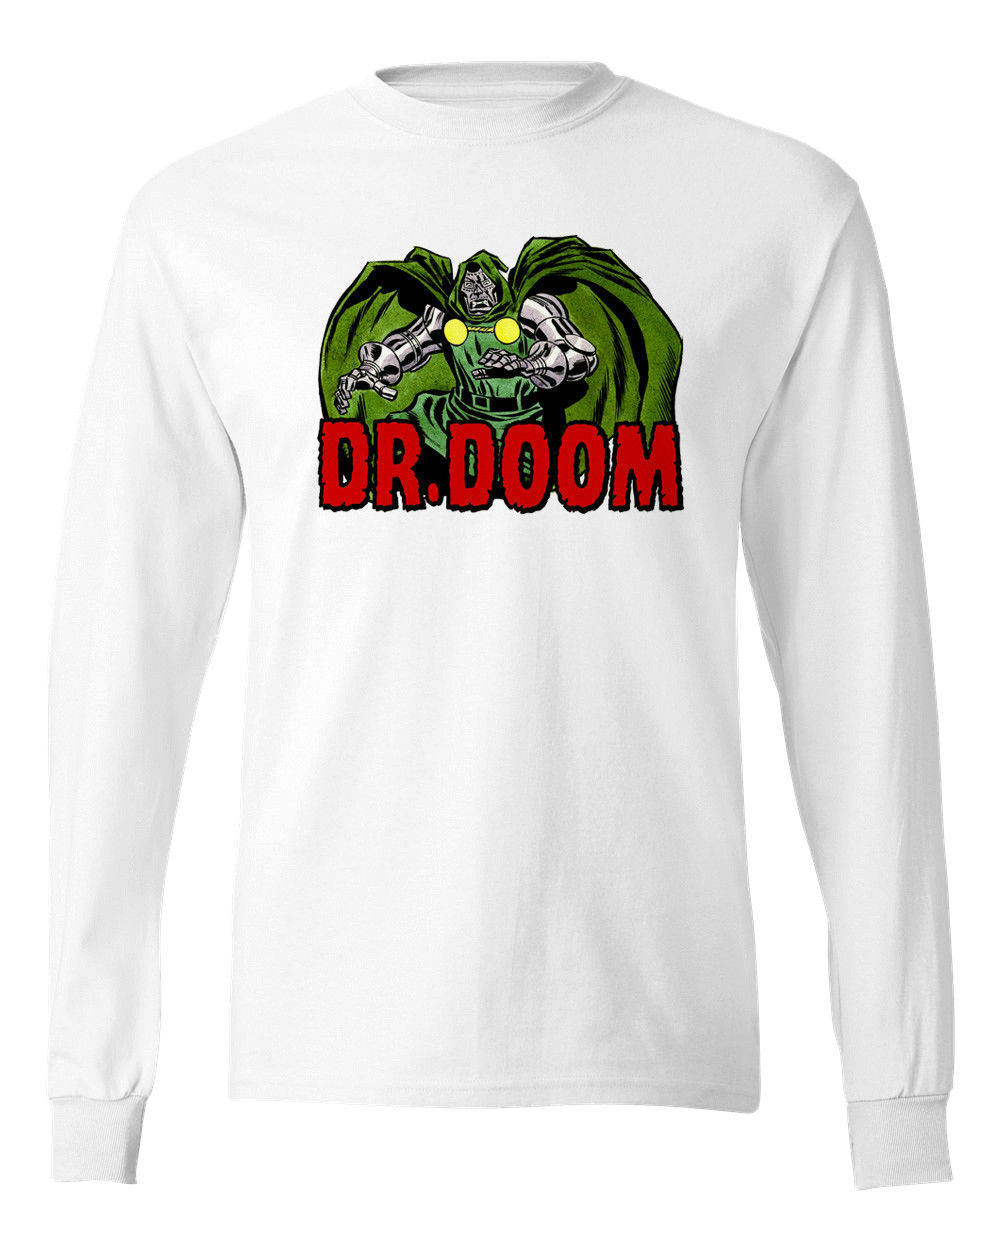 Dr. Doom T-shirt Long Sleeve  Marvel Comics Fantastic Four cotton  graphic tee